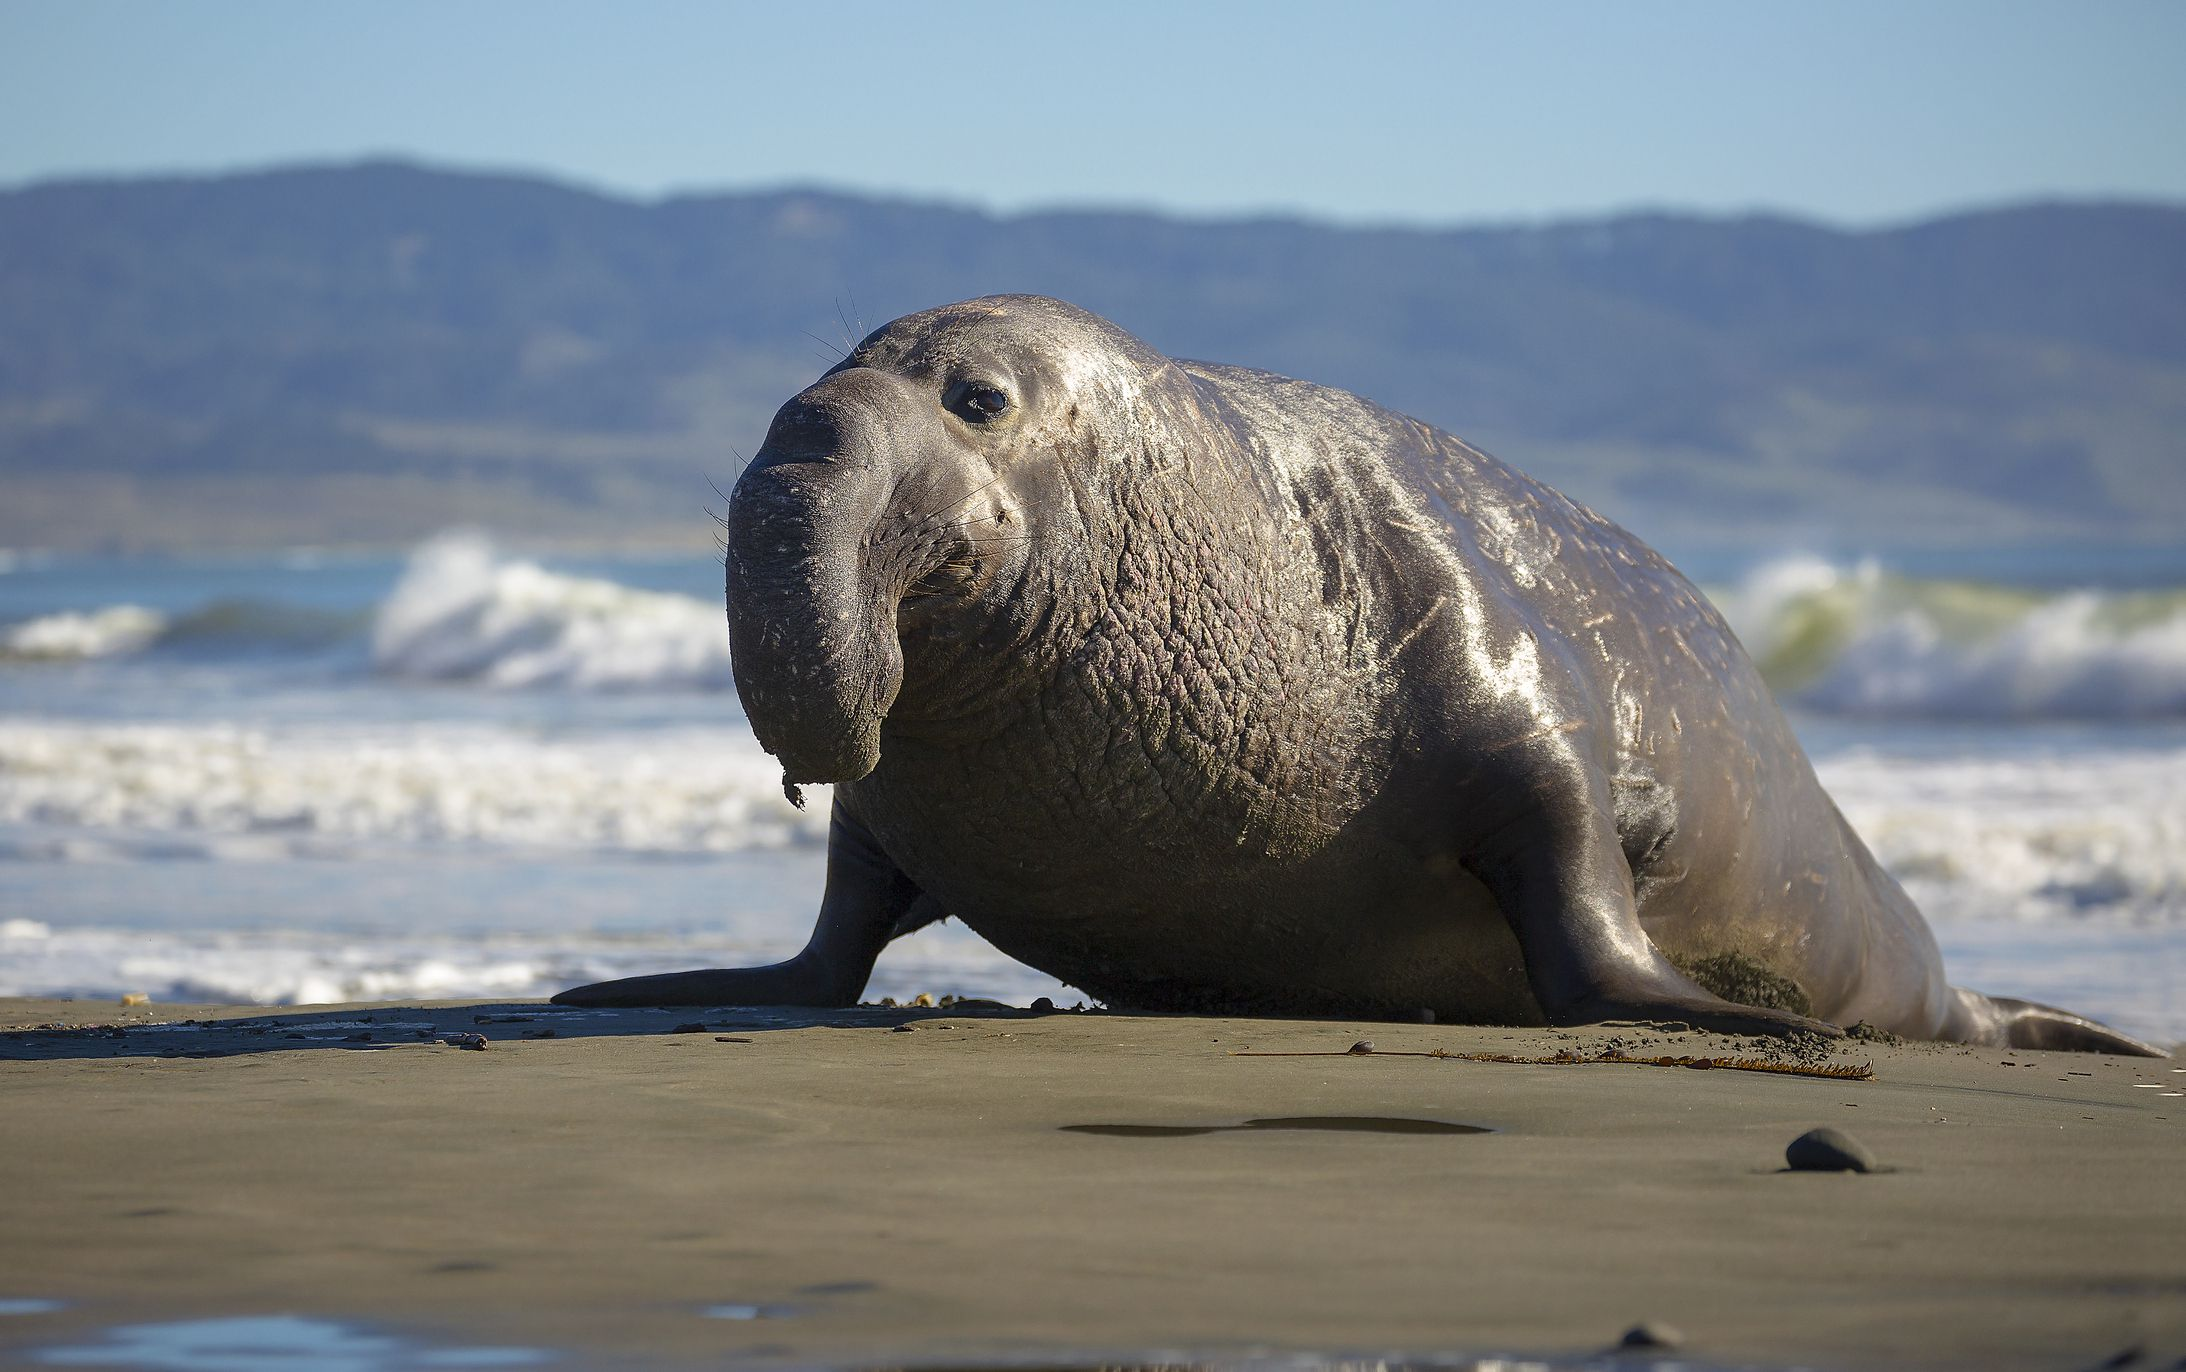 Elephant Seal Facts (Genus Mirounga)